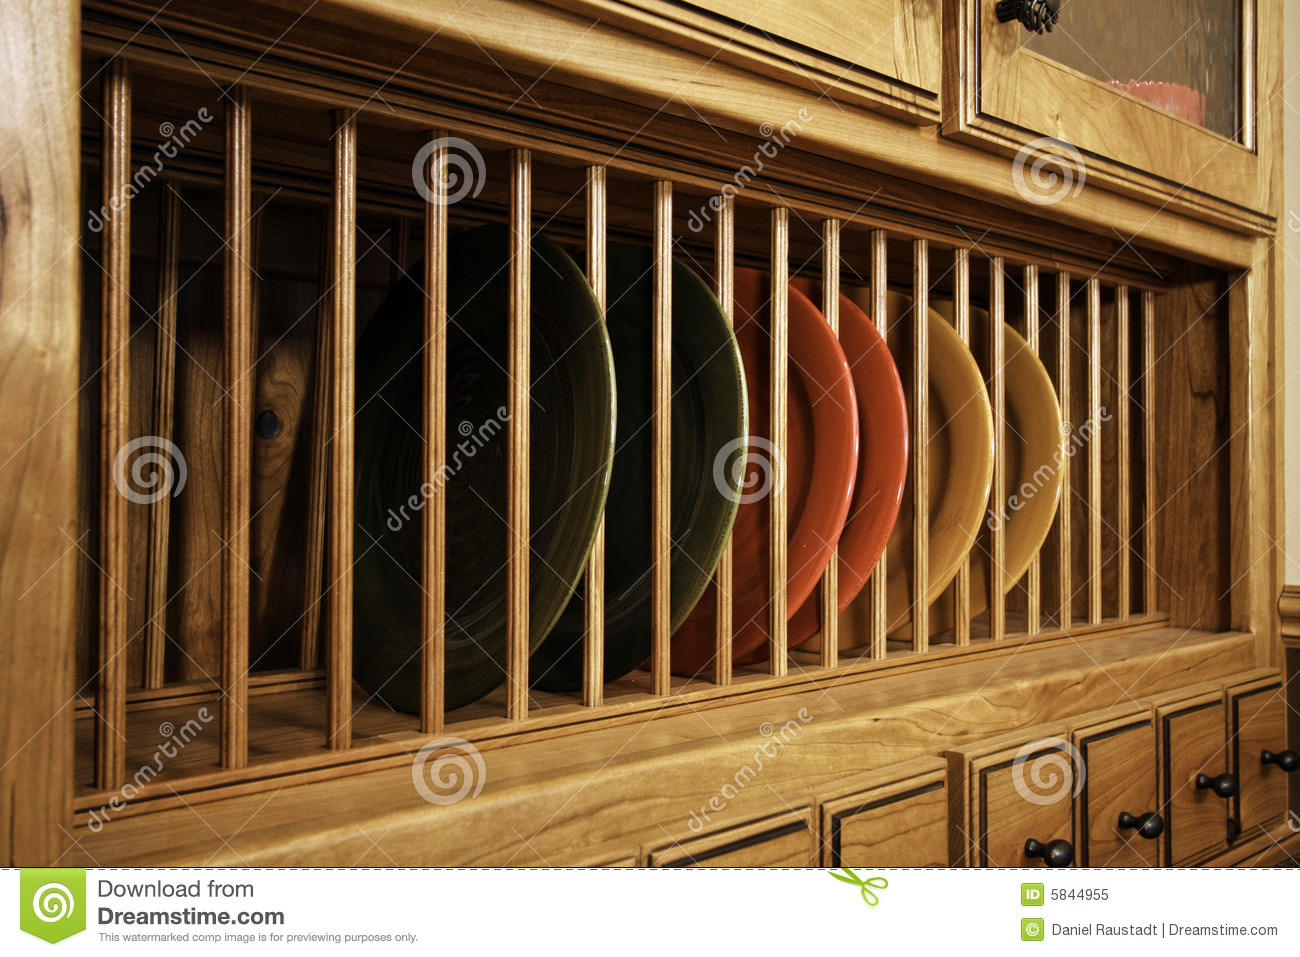 Unique Kitchen Cabinets unique kitchen cabinet dish storage royalty free stock photo